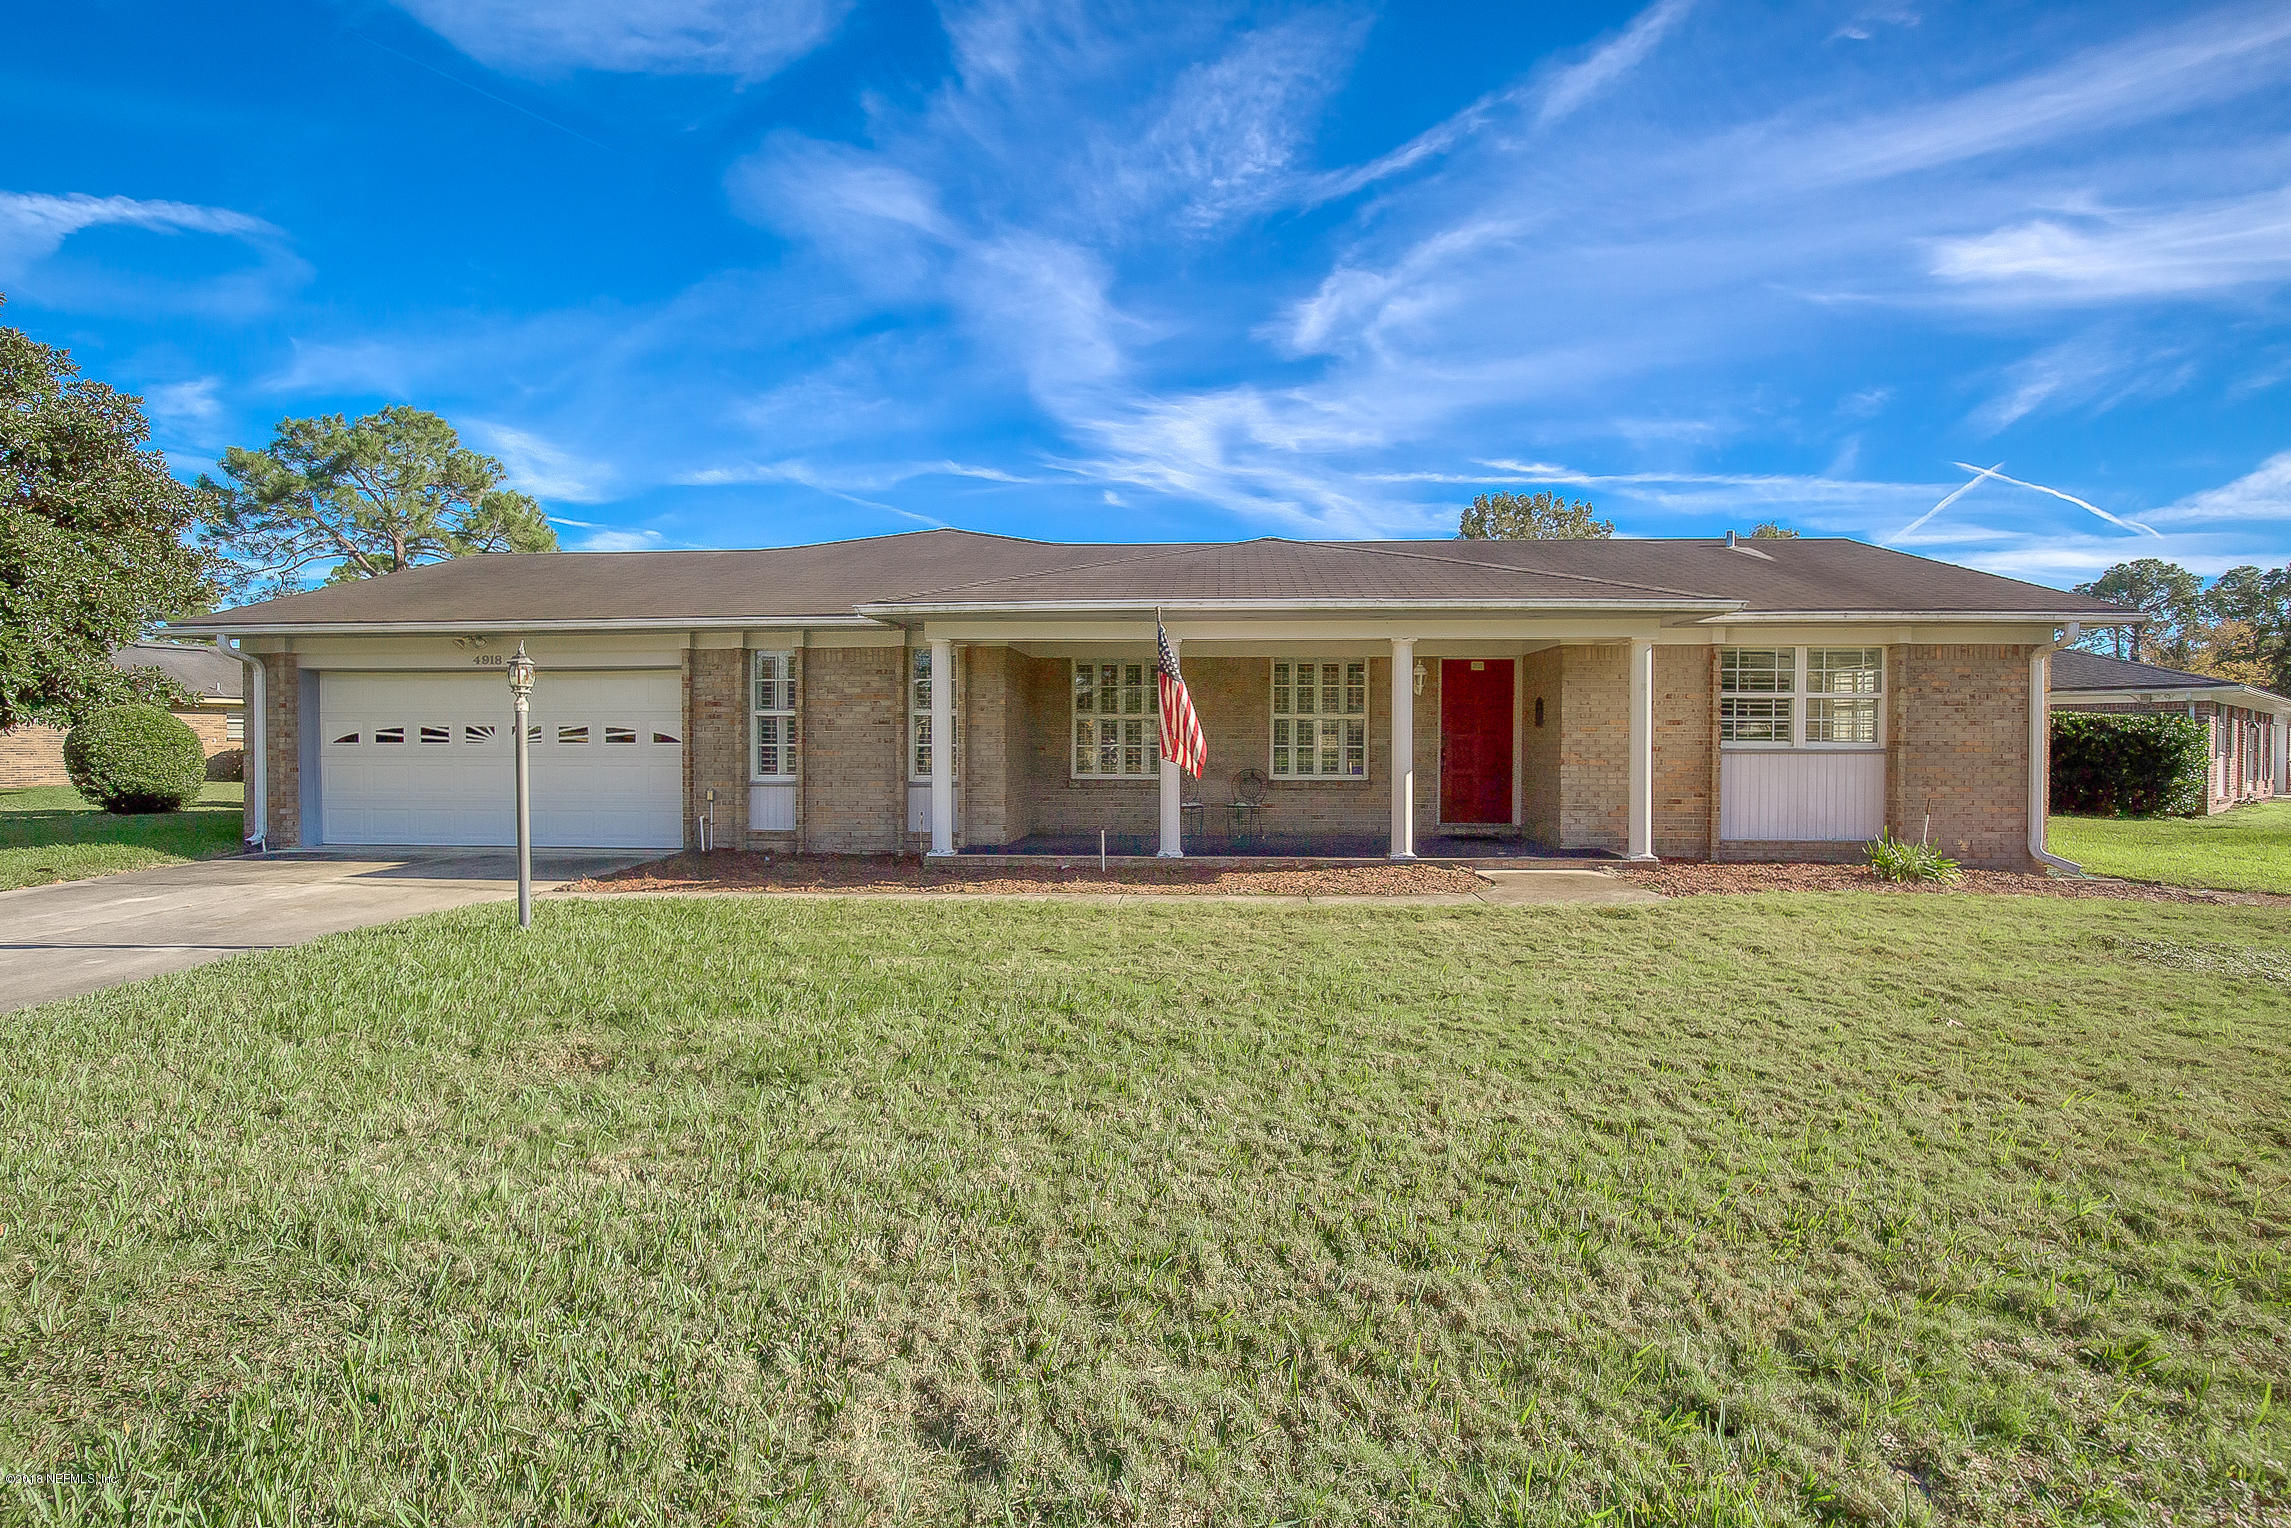 4918 RATHBONE, JACKSONVILLE, FLORIDA 32257, 4 Bedrooms Bedrooms, ,2 BathroomsBathrooms,Residential - single family,For sale,RATHBONE,970082